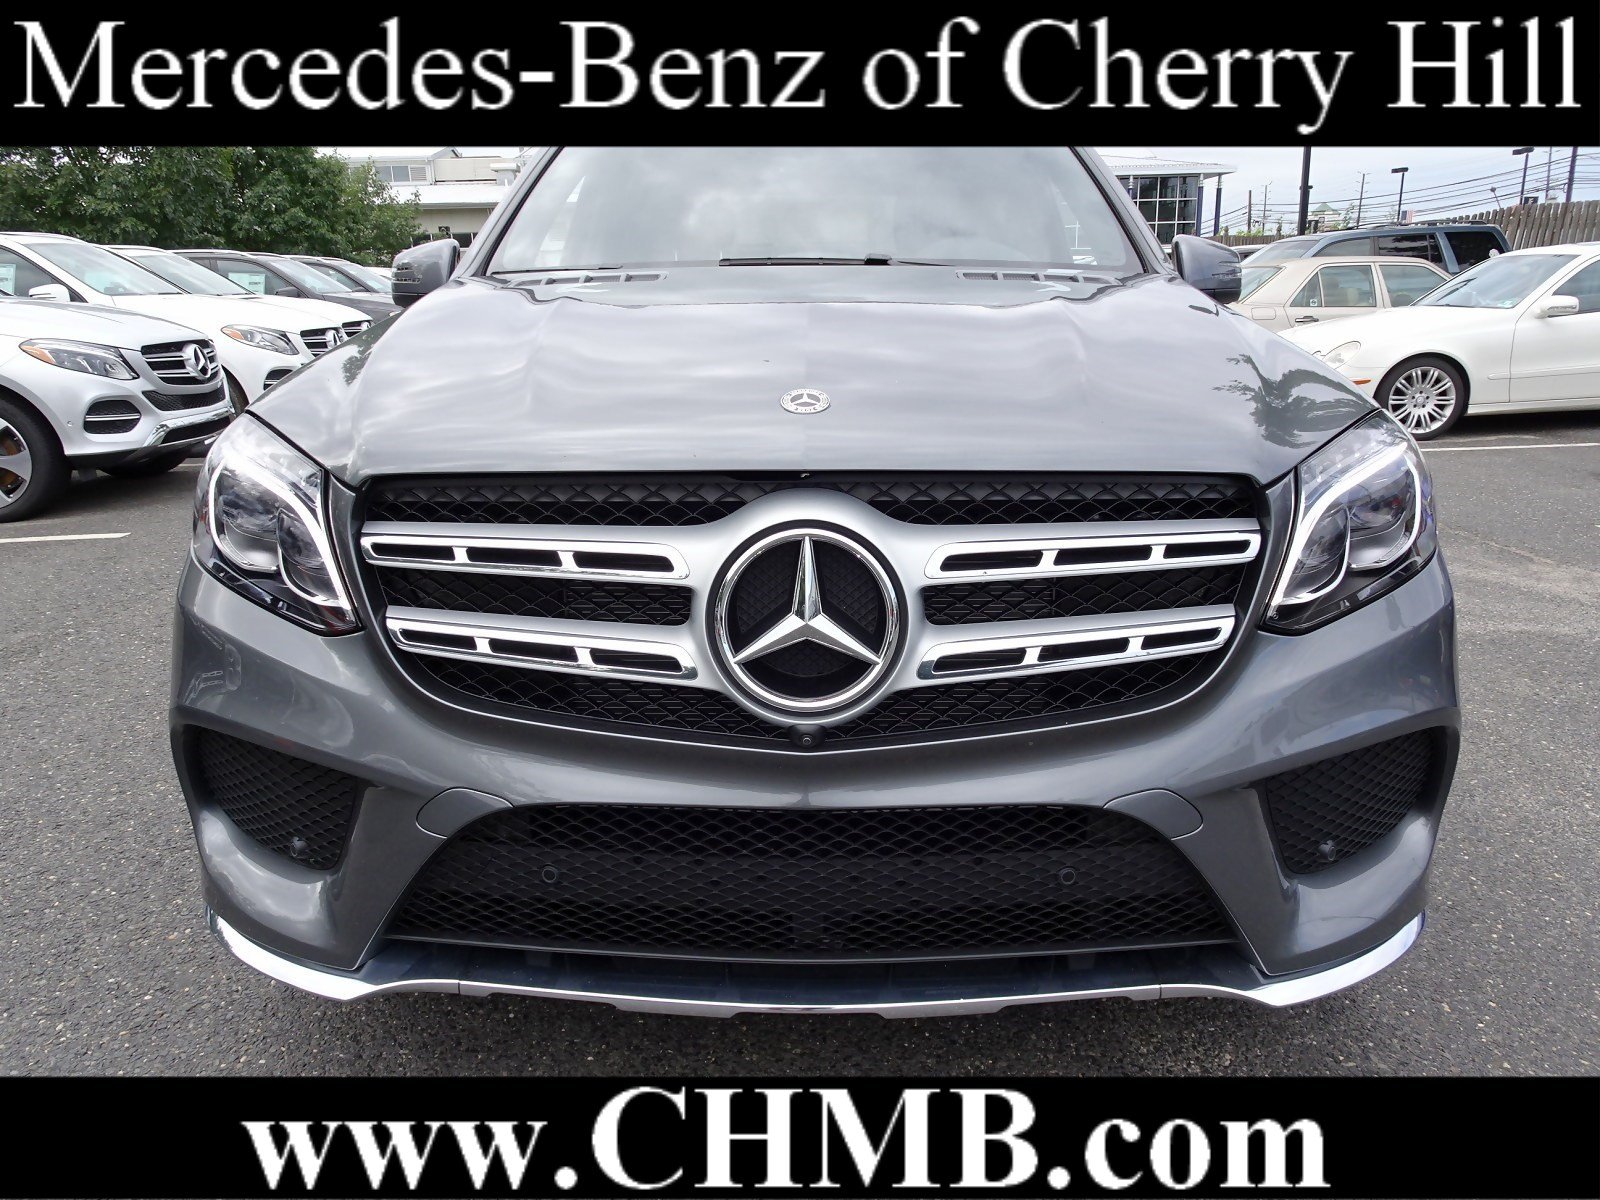 New 2019 Mercedes Benz GLS GLS 550 SUV in Cherry Hill M2297